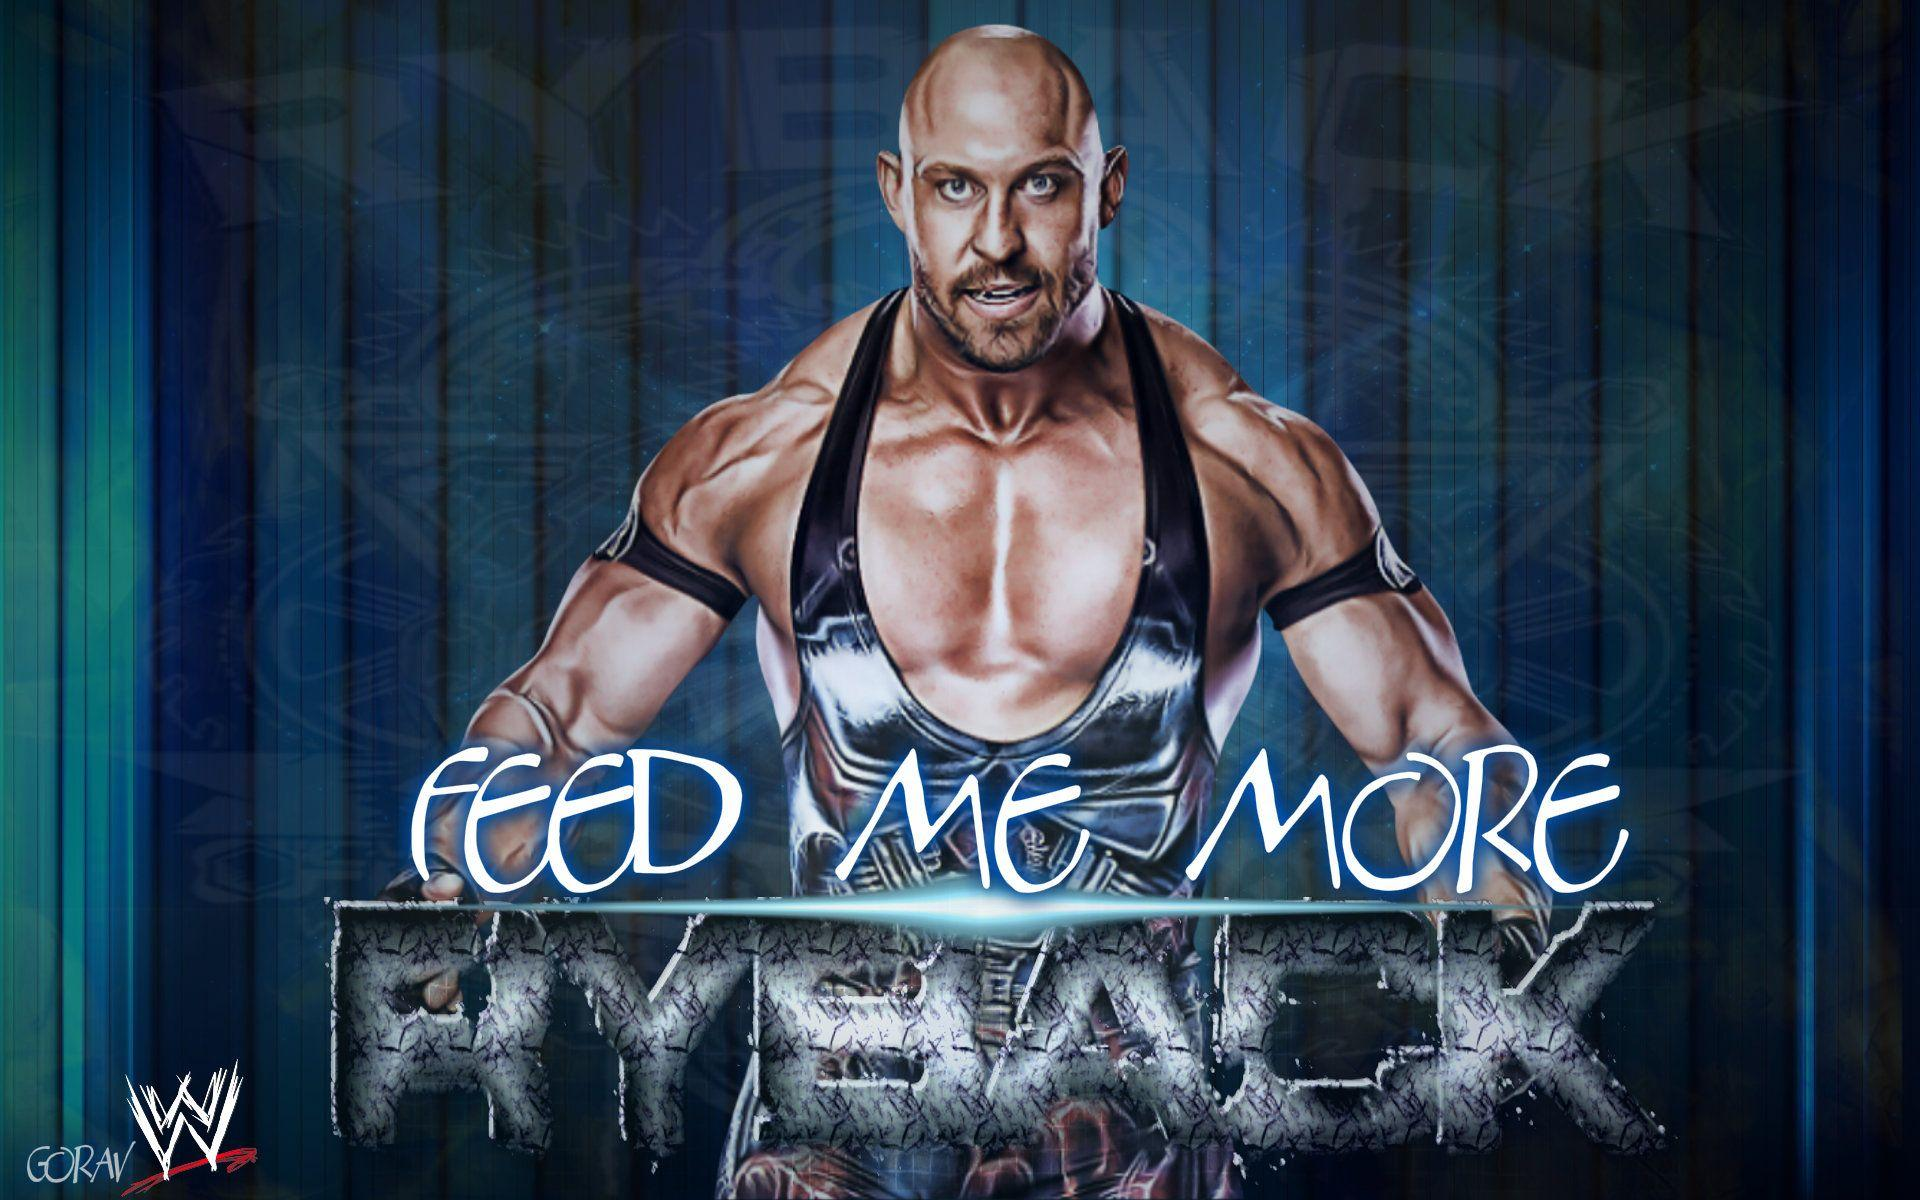 wwe fighter wallpapers wallpapers of wwe fighter wwe wrestling